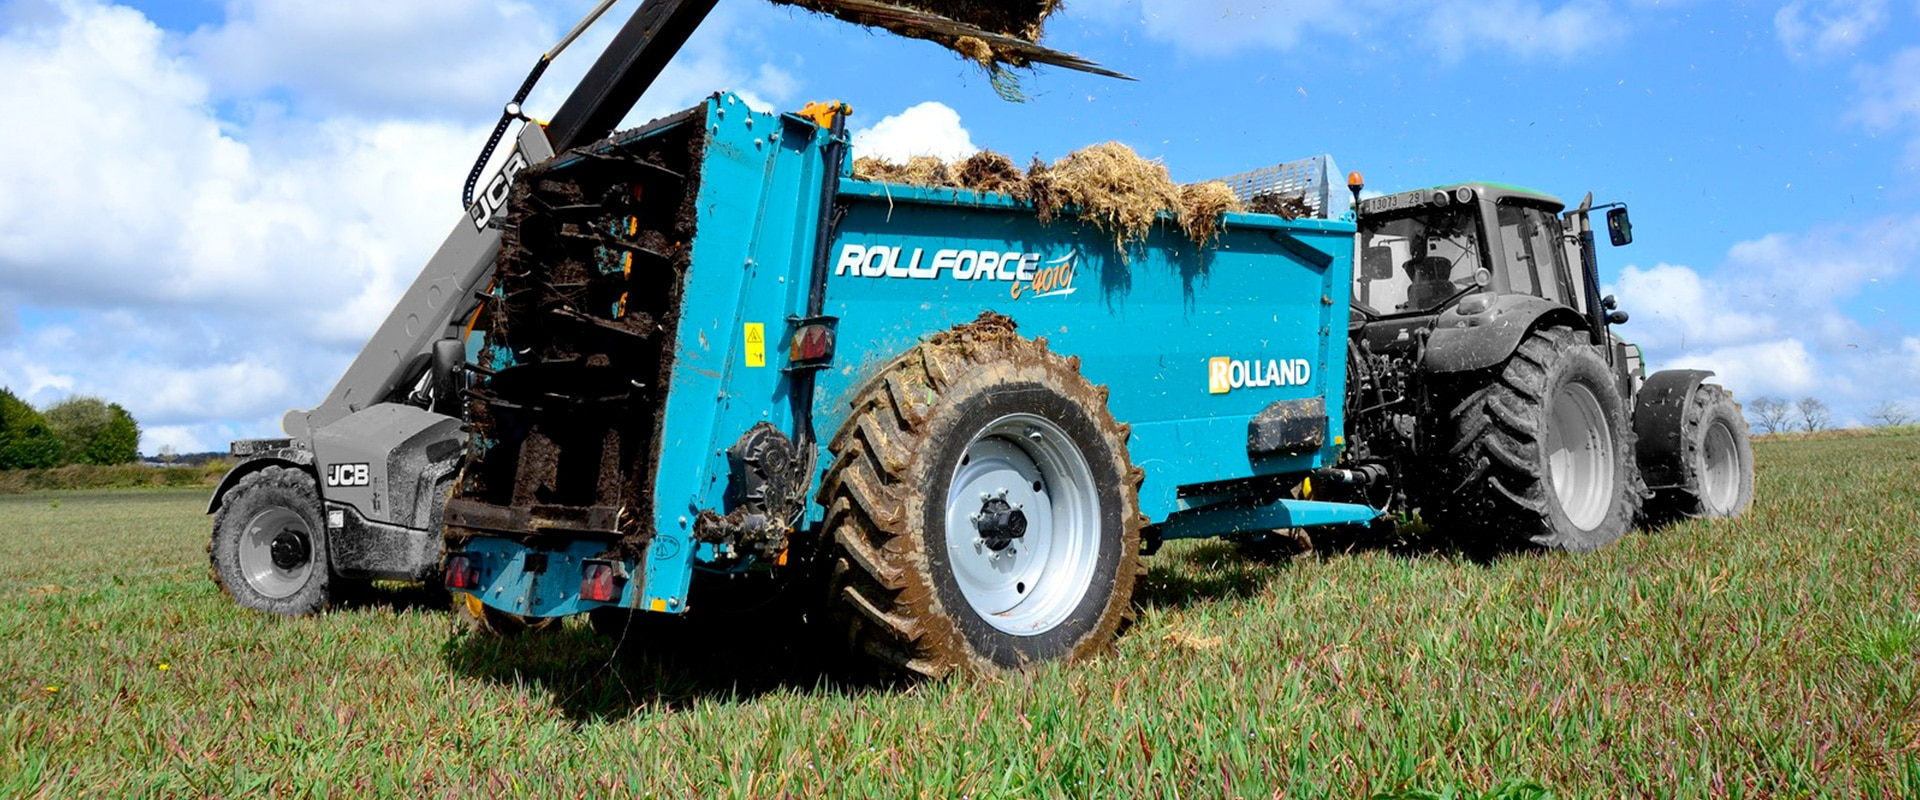 Rollforce-Compact 3706